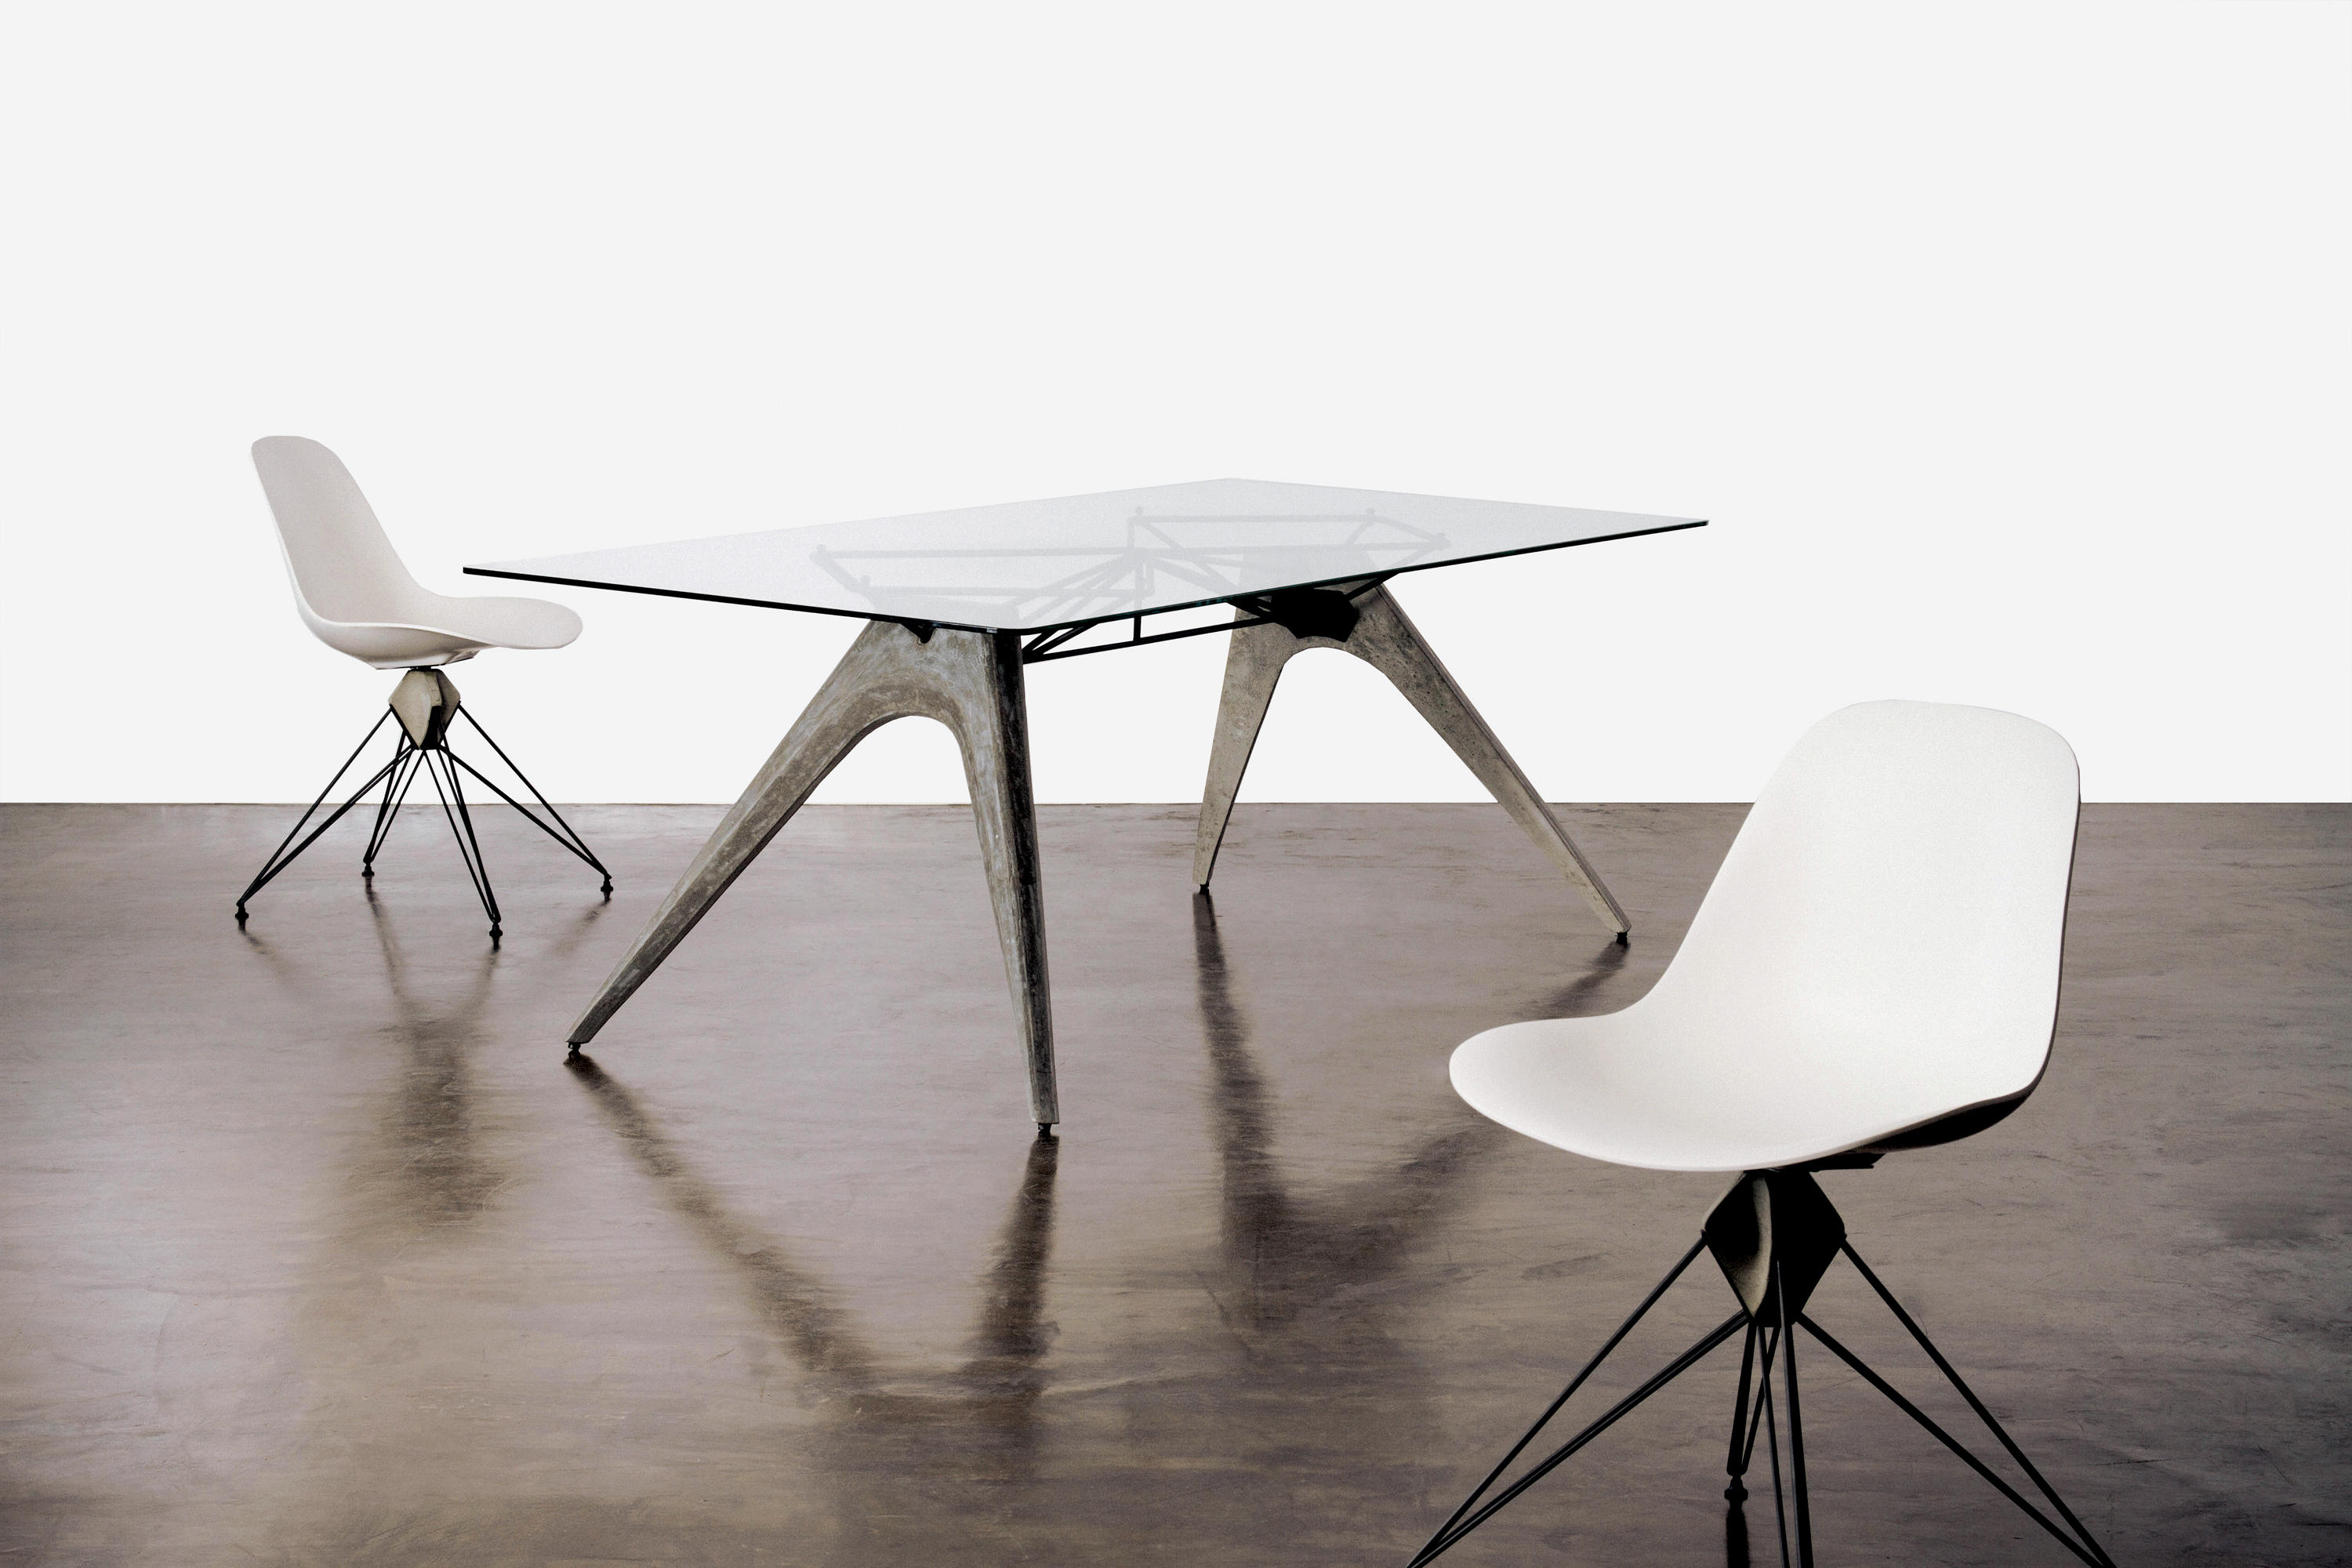 Kahn Dining Table Tables De Repas De District Eight